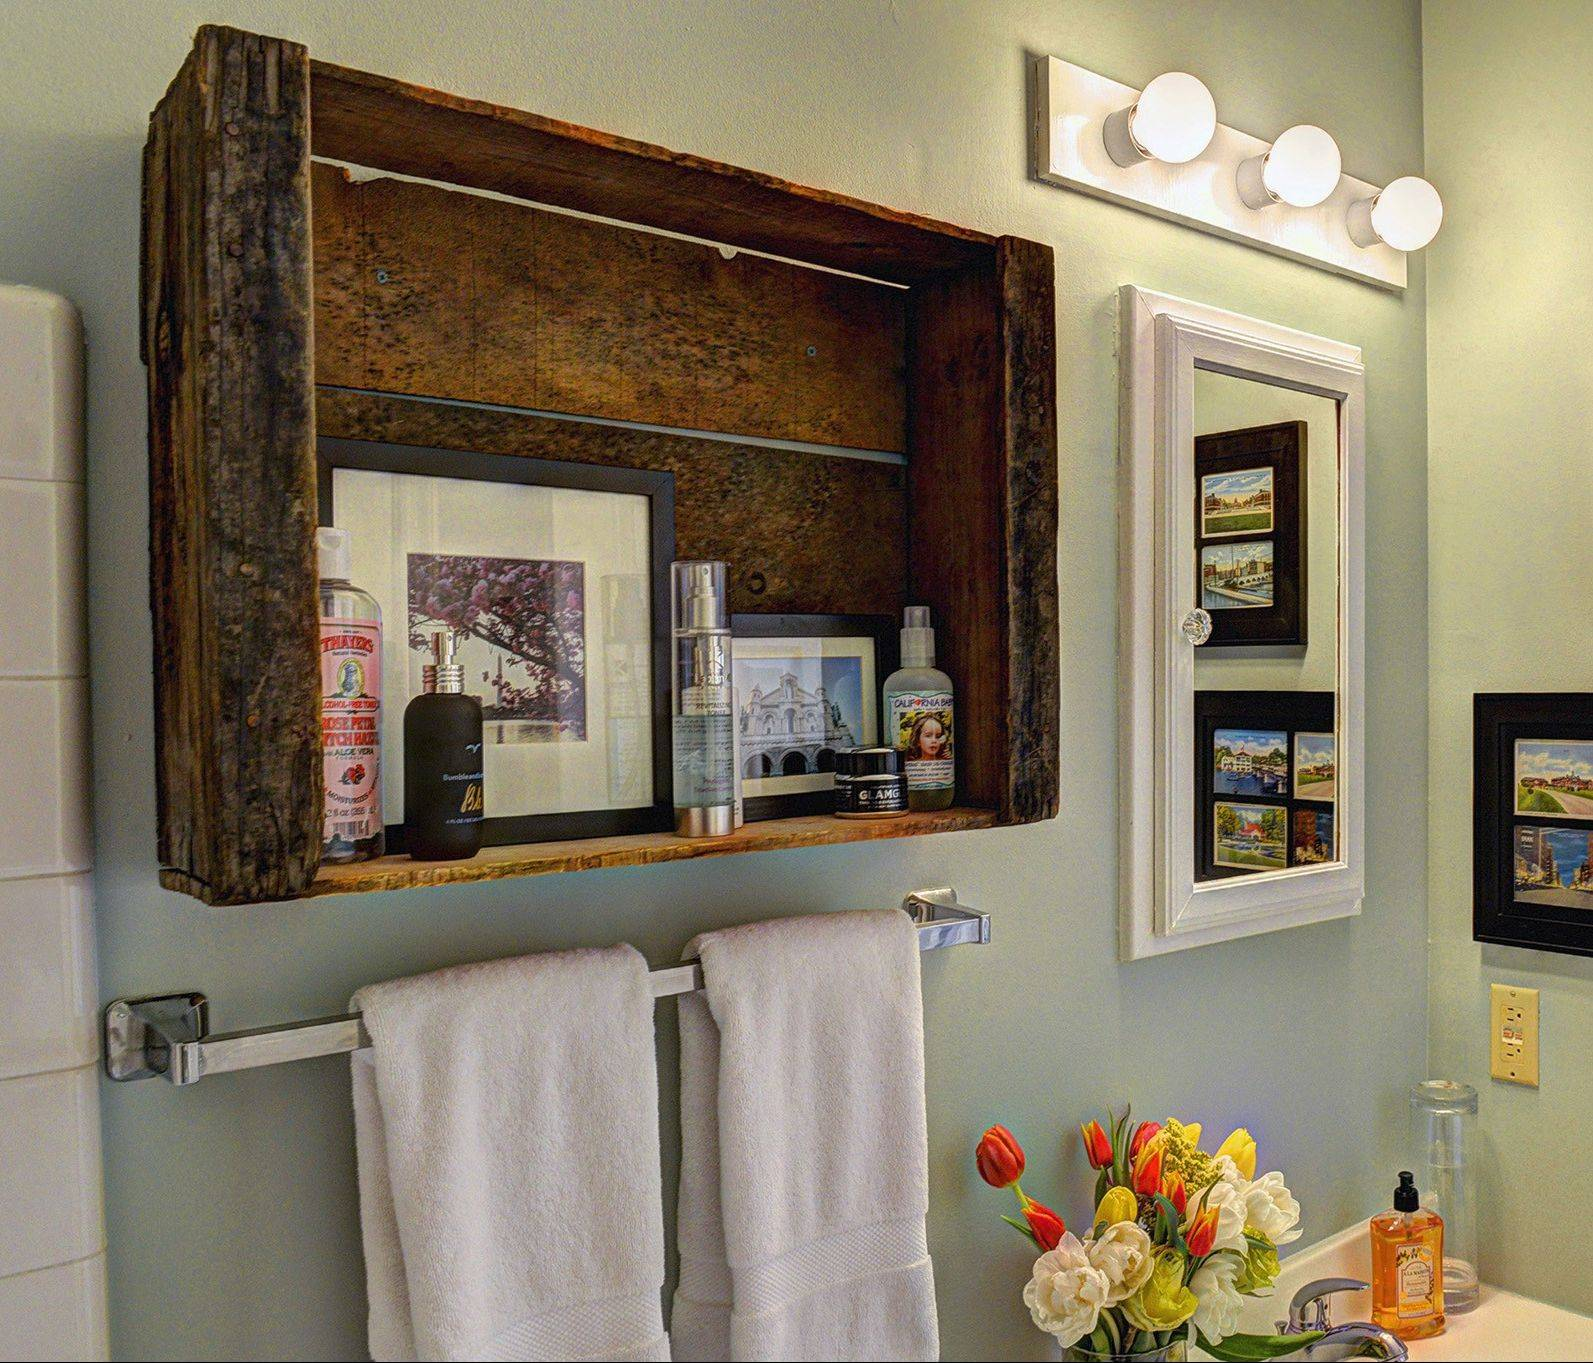 Huerta bought a vintage wooden grape crate on Etsy and hung it on the bathroom wall for extra storage.